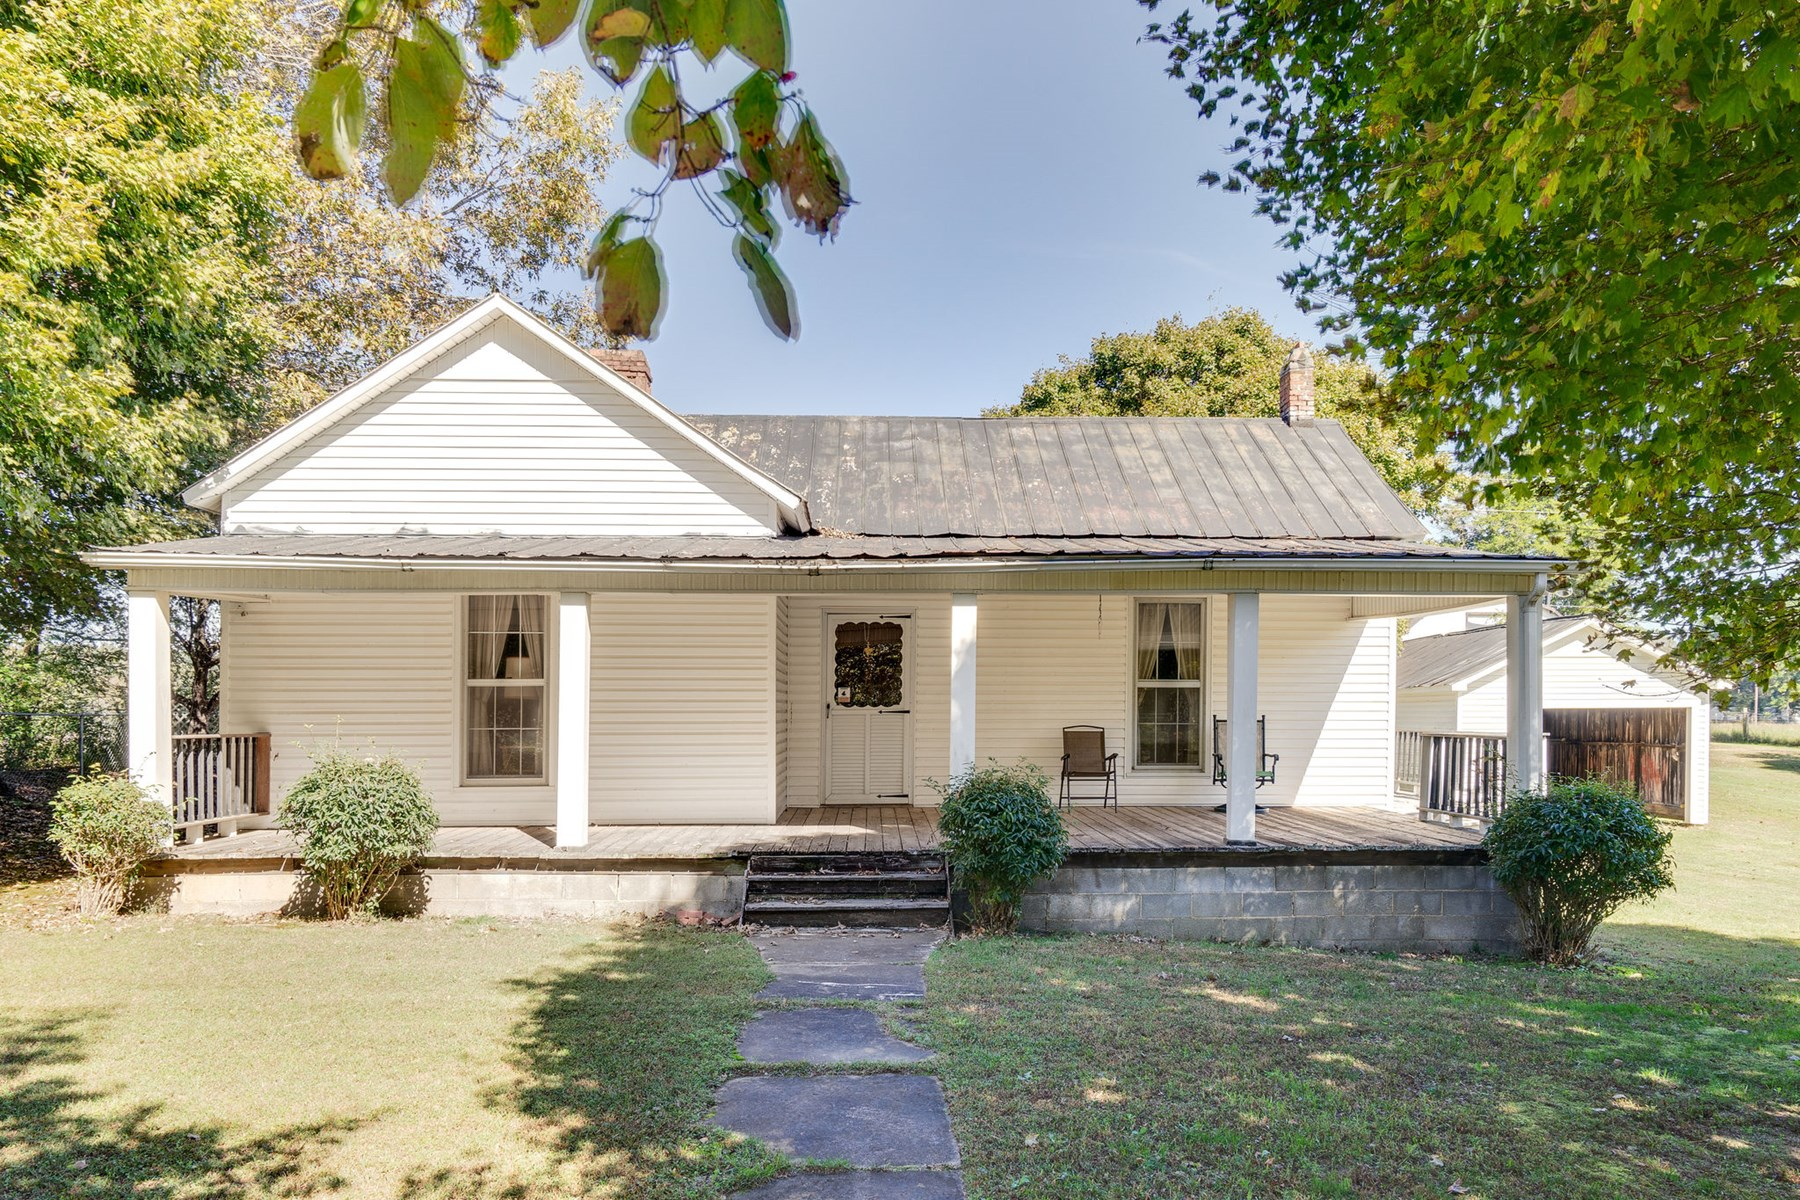 Hohenwald, TN Lewis County Historic Country Home For Sale